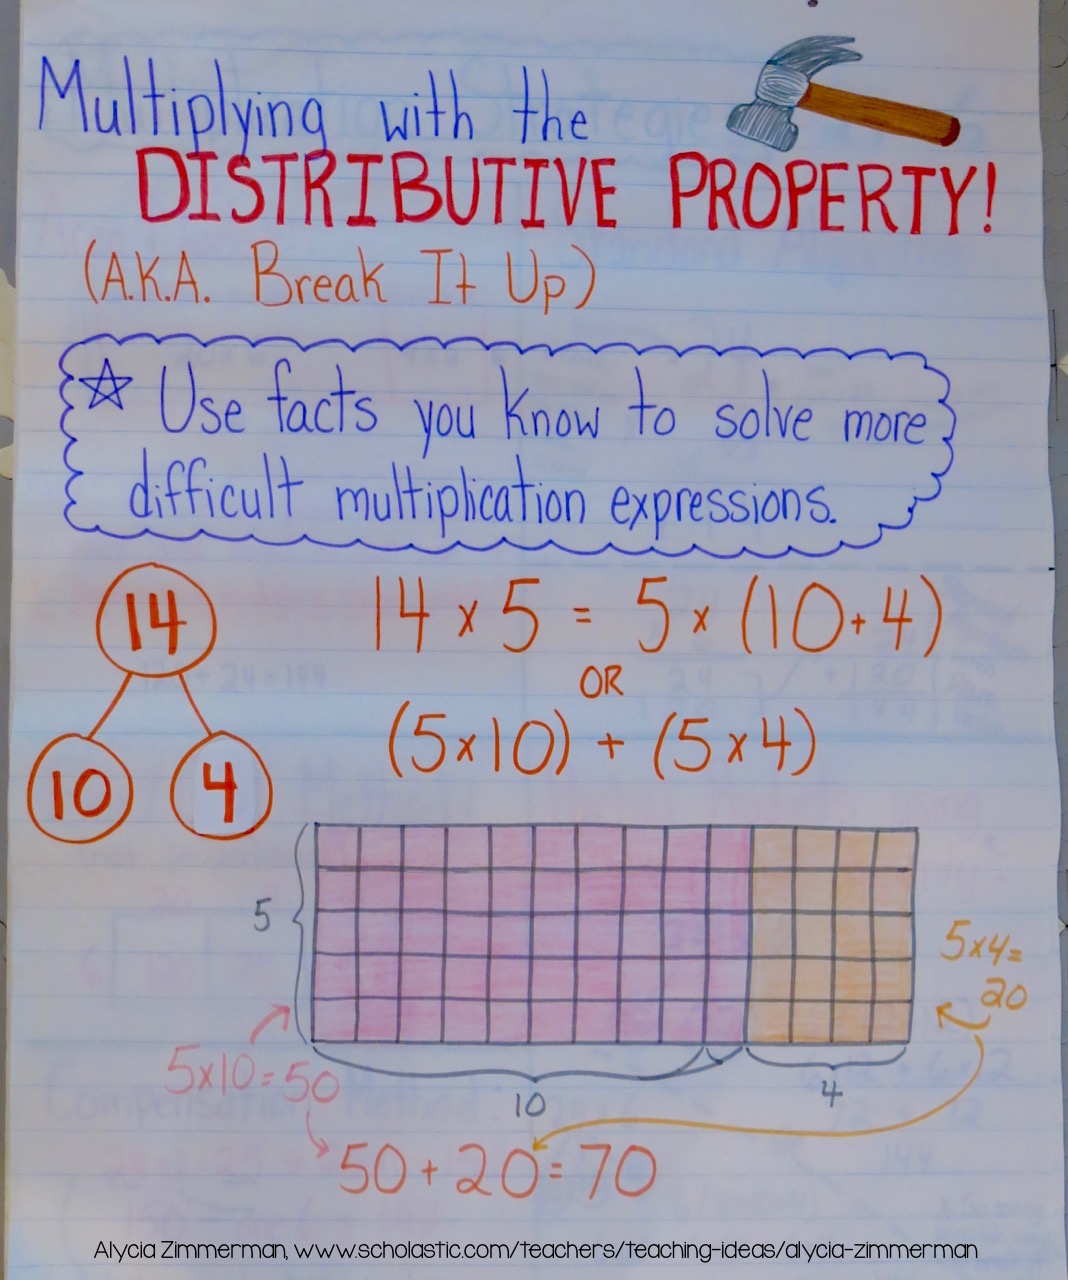 worksheet Working With The Properties Of Mathematics teaching multiplication with the distributive property scholastic activities